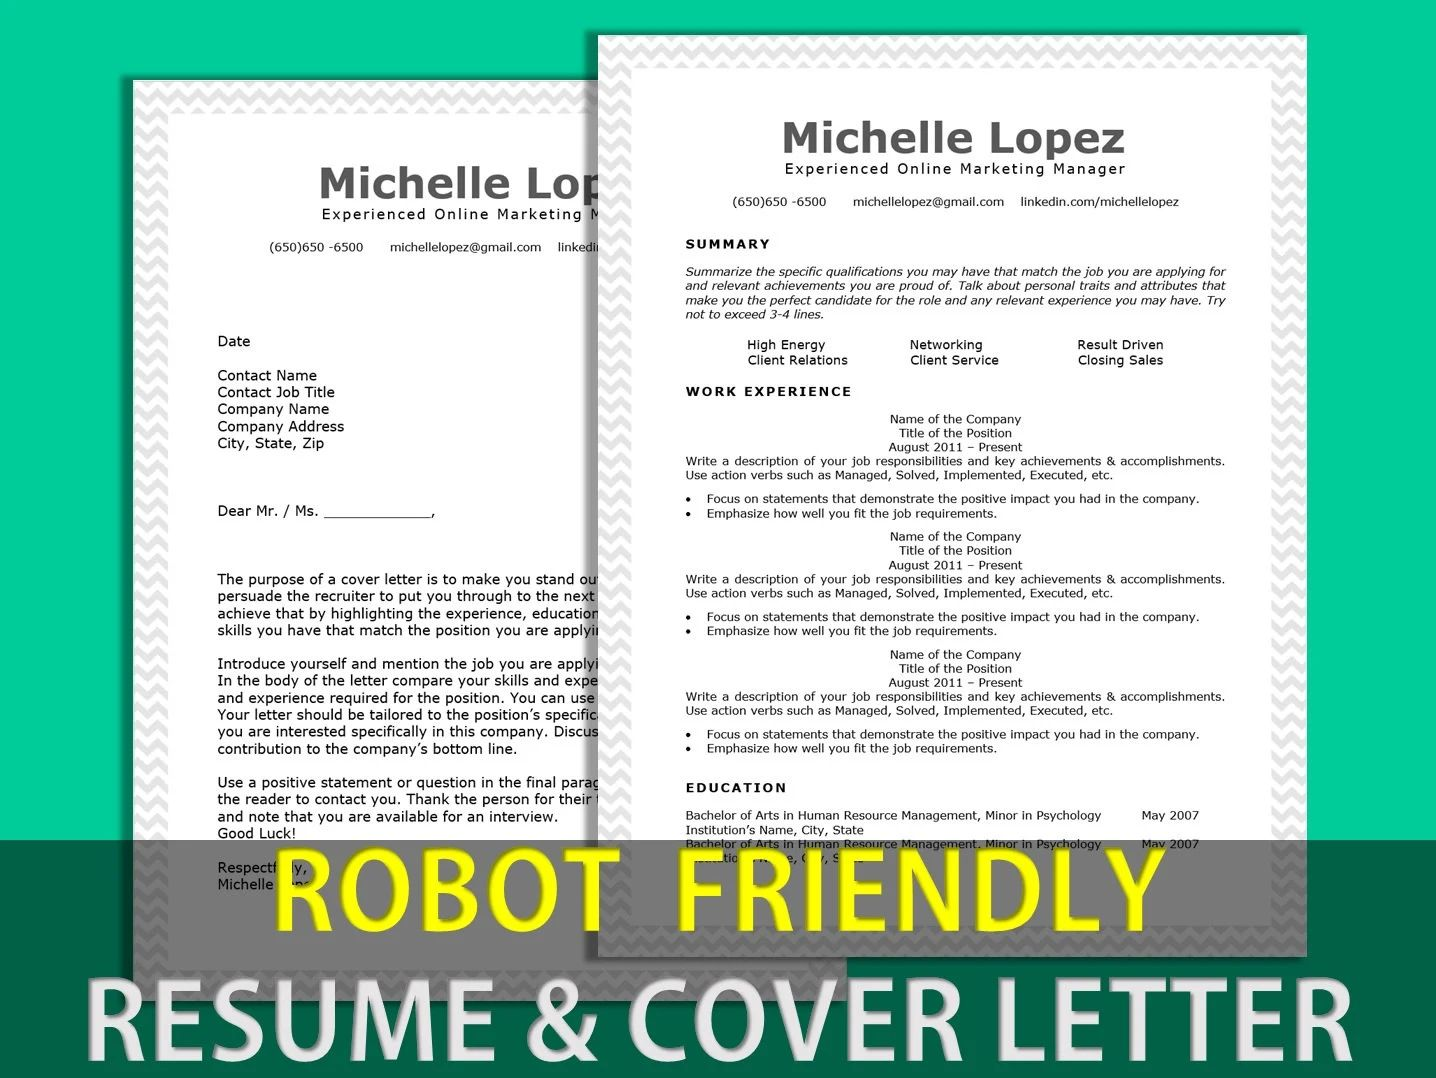 cv model robot friendly